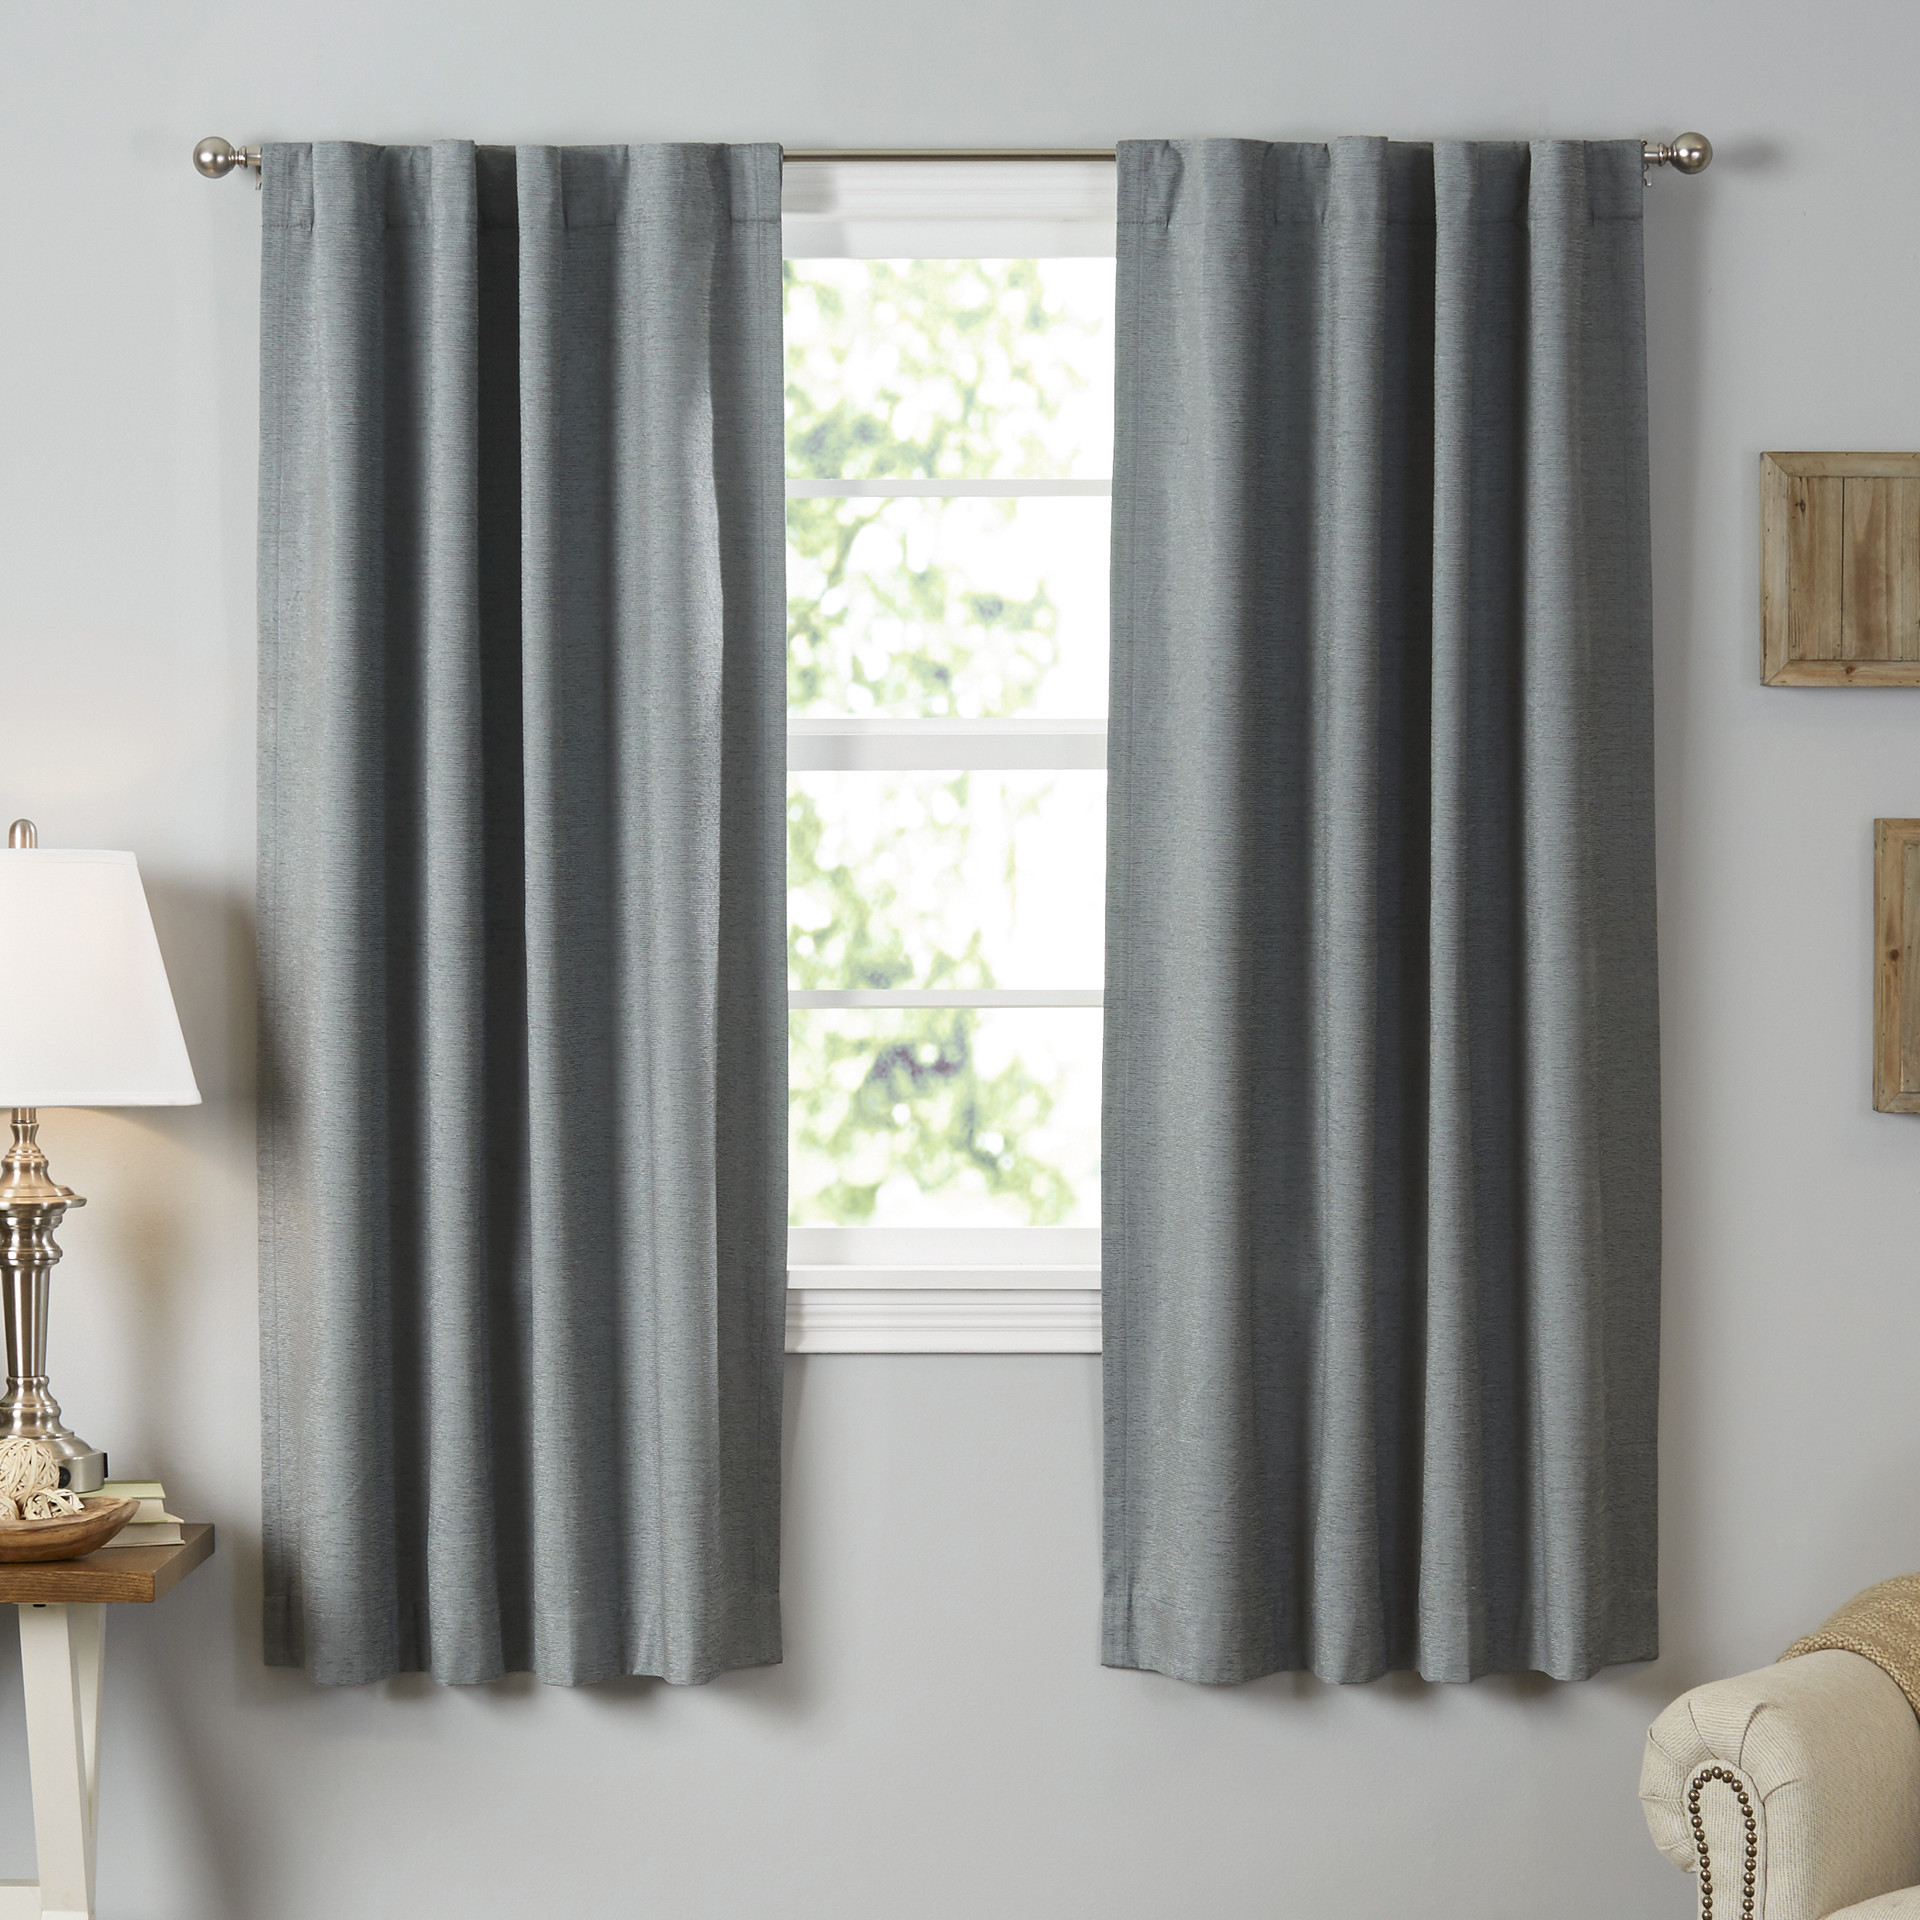 Blackout Cloth Walmart | Teal Curtains Target | Soundproof Curtains Target